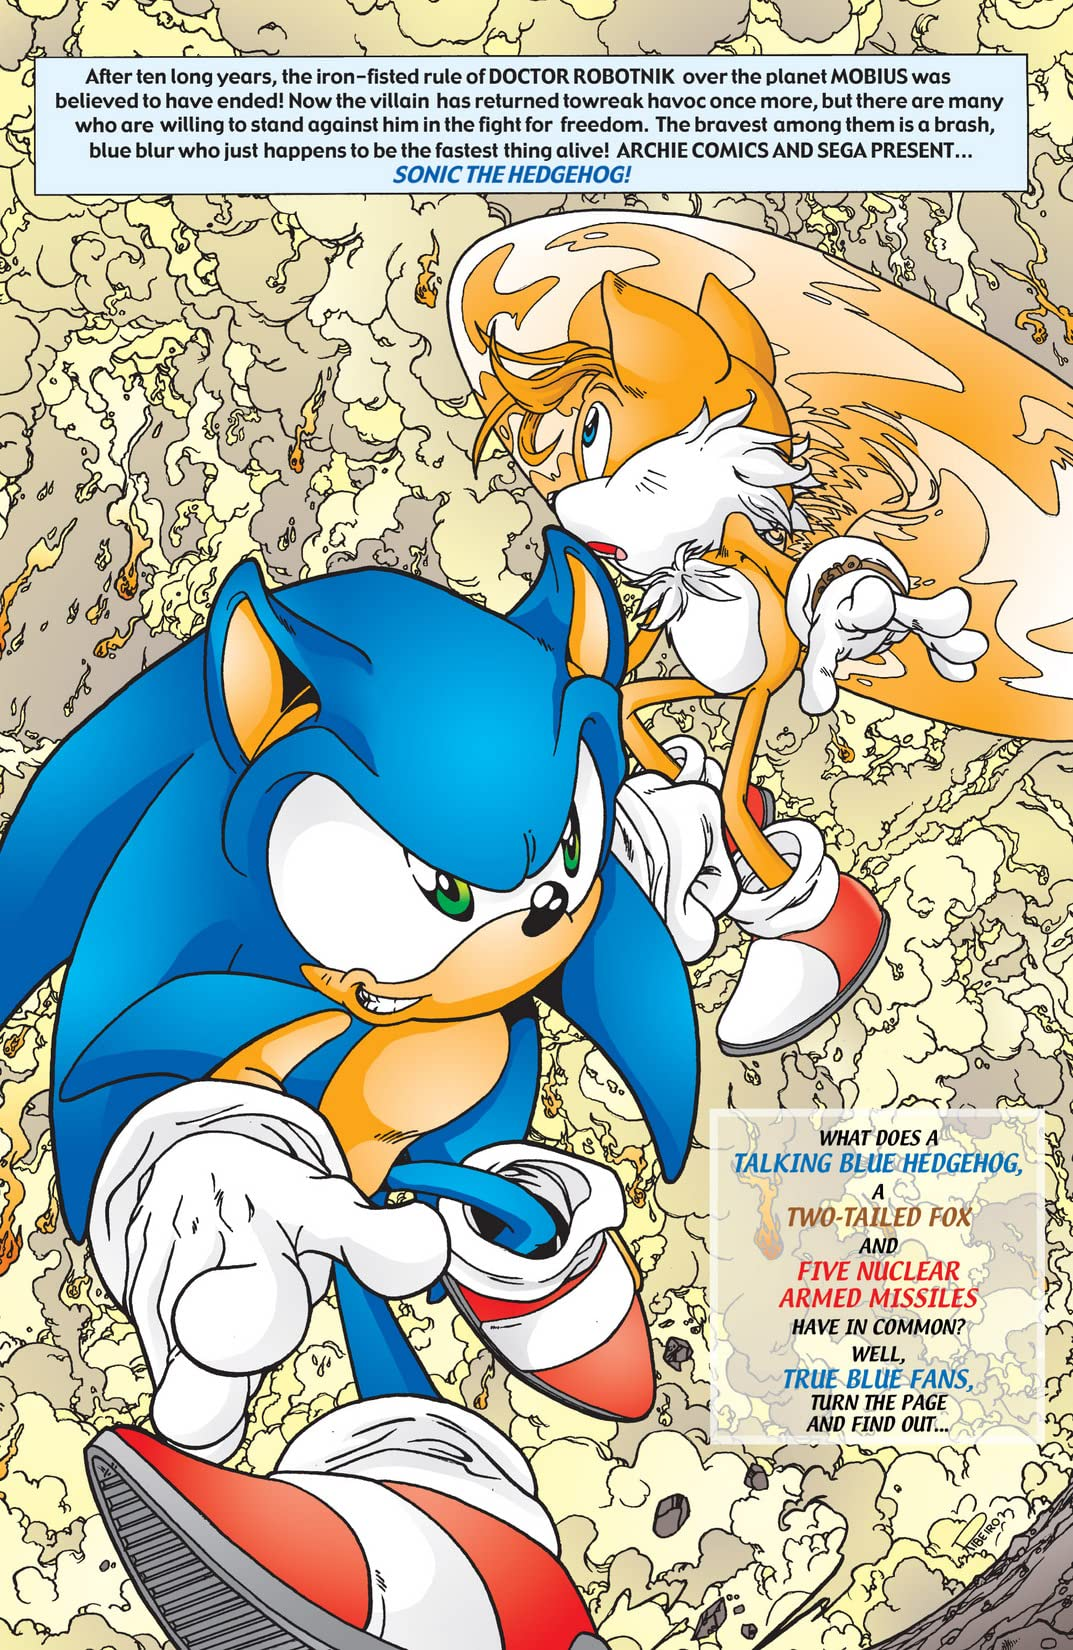 Sonic the Hedgehog #110